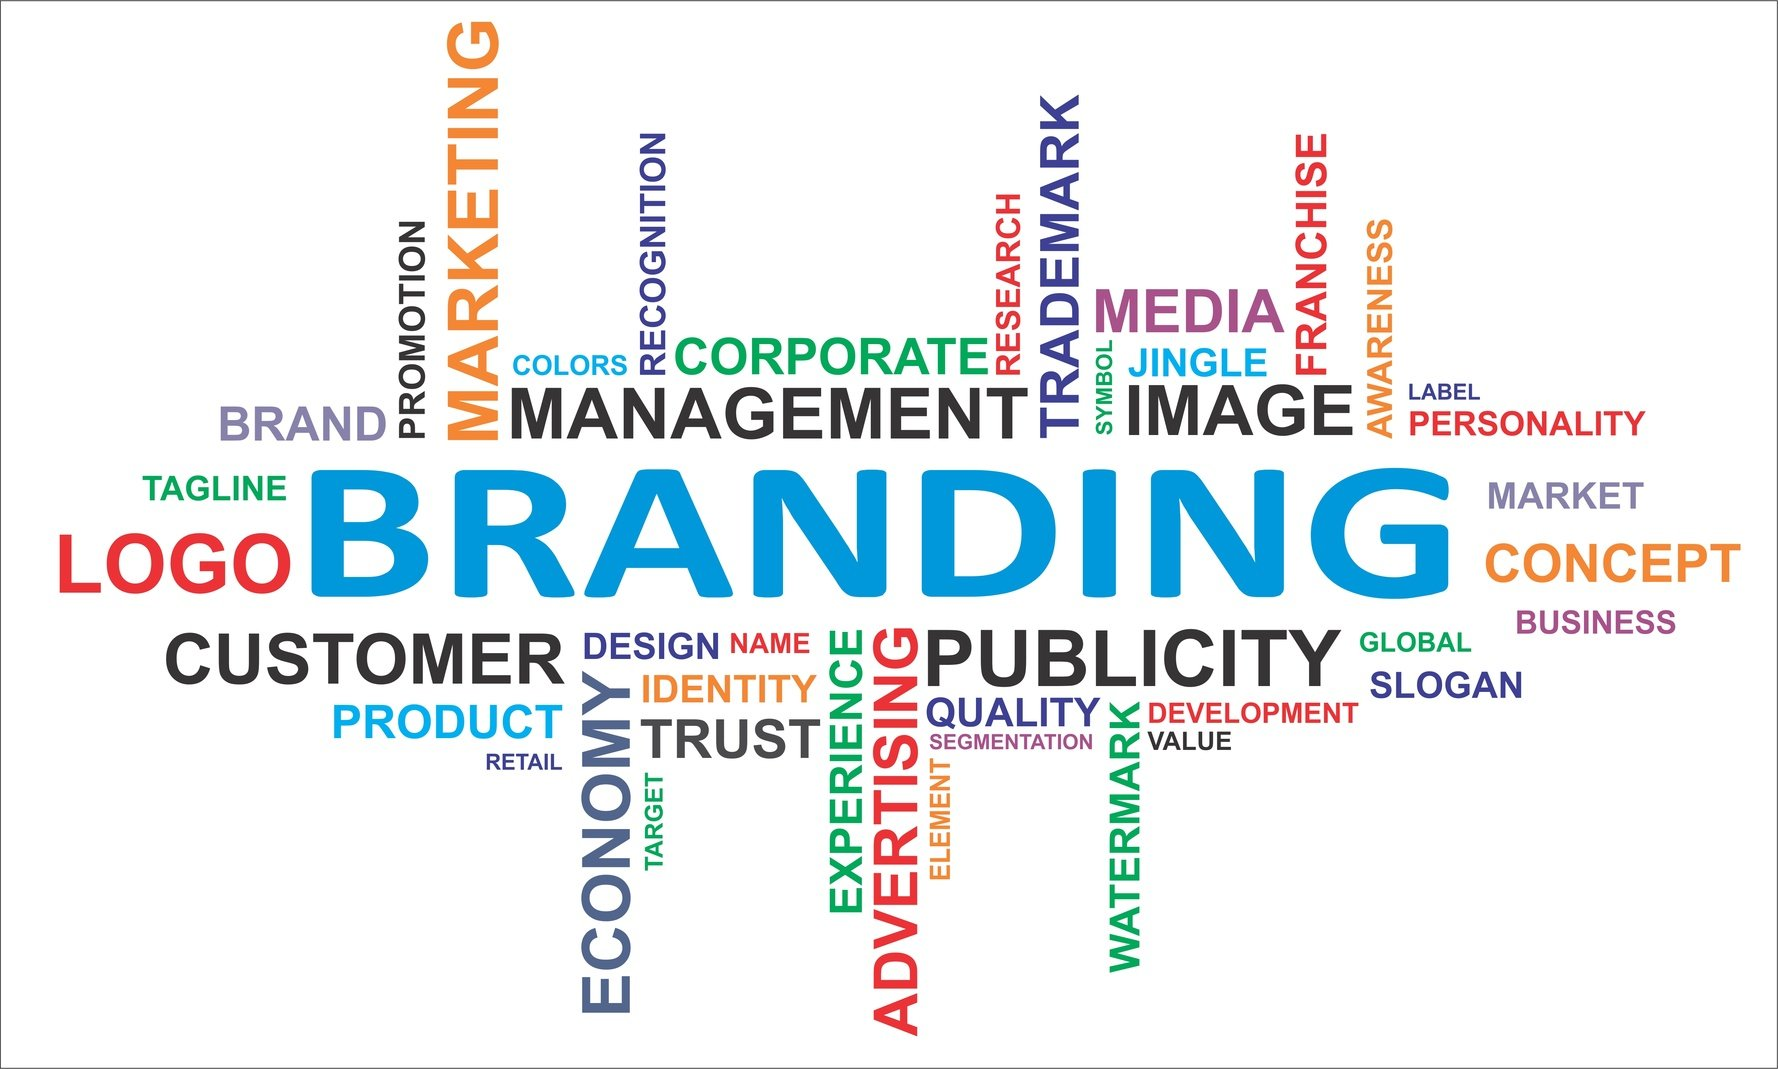 branded content - content marketing - content strategy - content marketing strategy